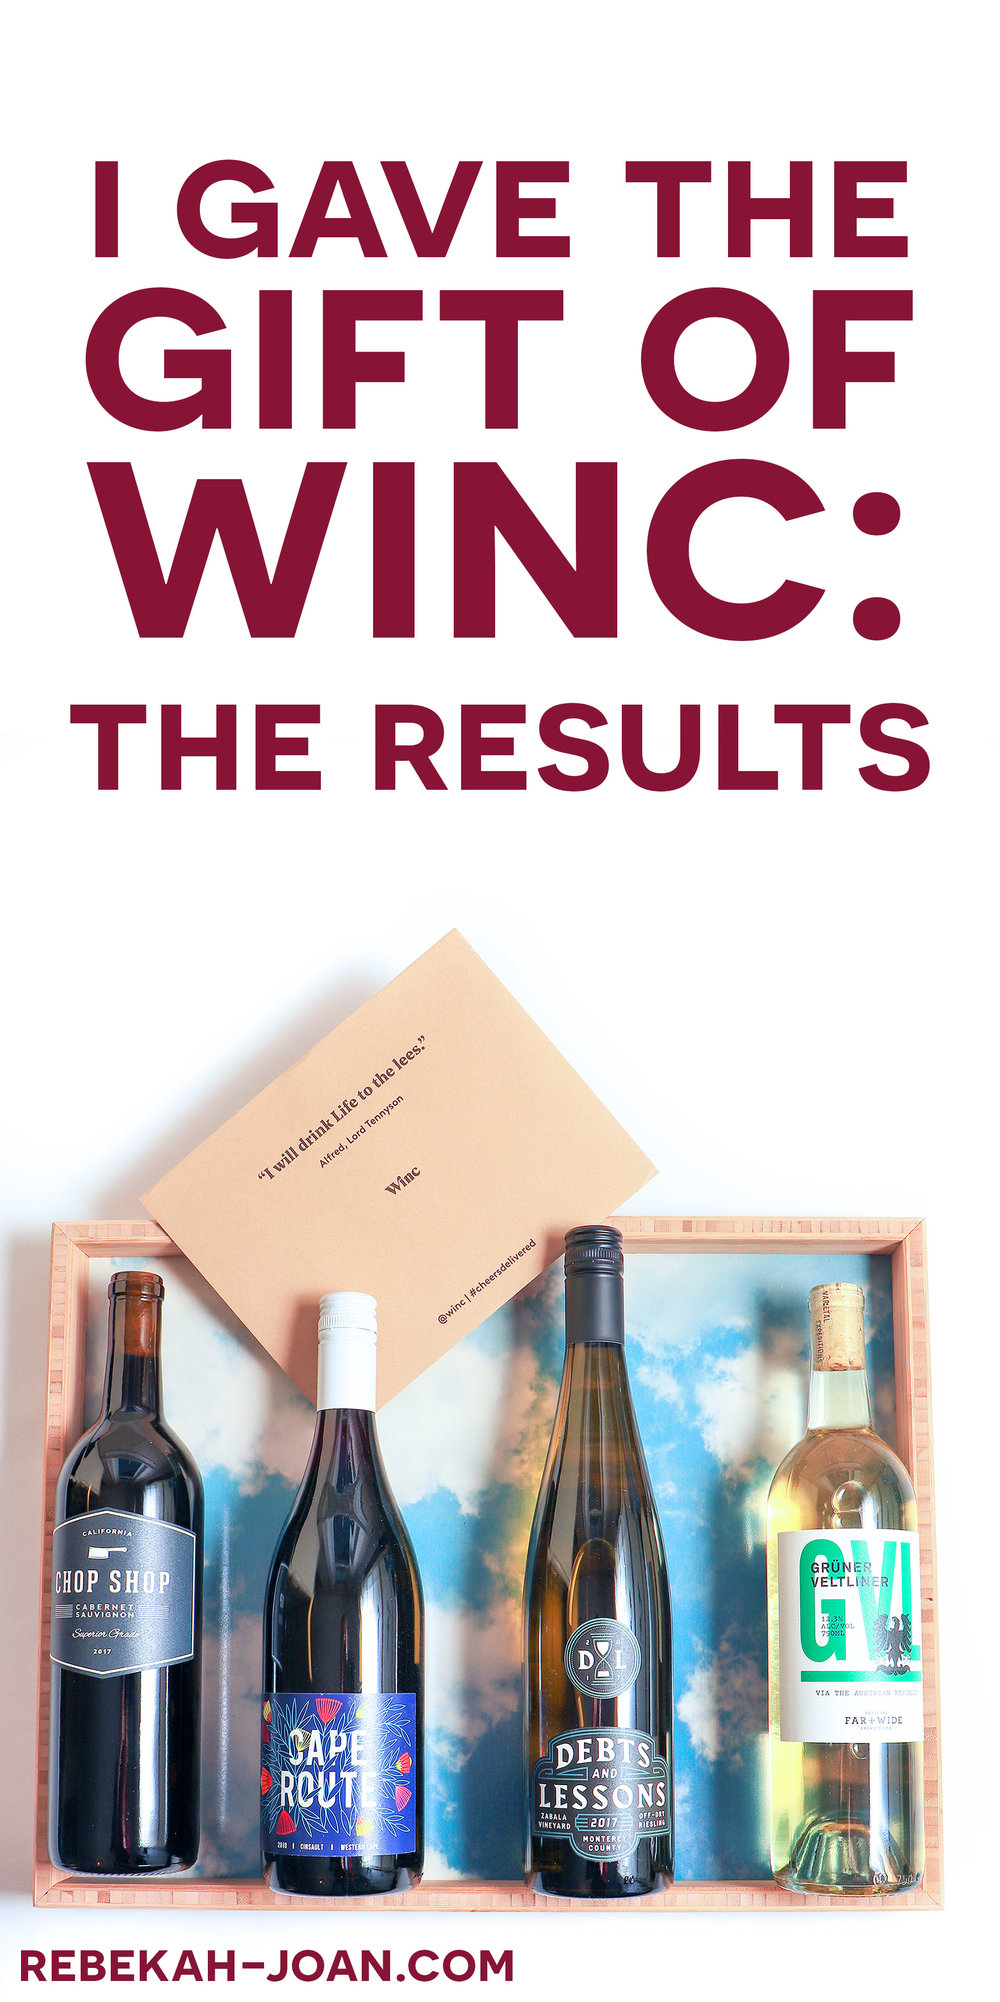 - For Christmas, I gave the gift of the wine subscription service Winc. This is my review of the entire process, from the palette test + shipping to tasting + rating the wines.